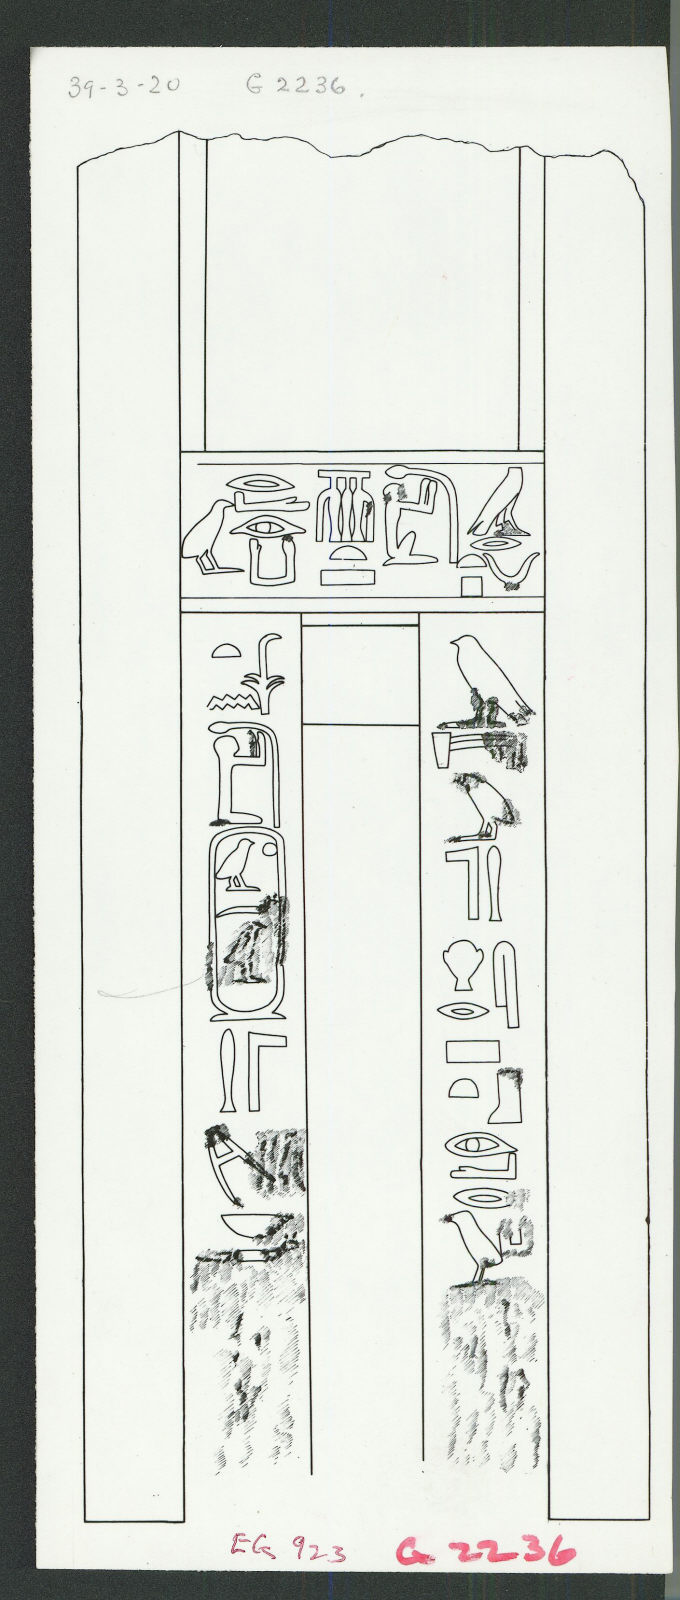 Drawings: G 2236: relief from false door of Irukare